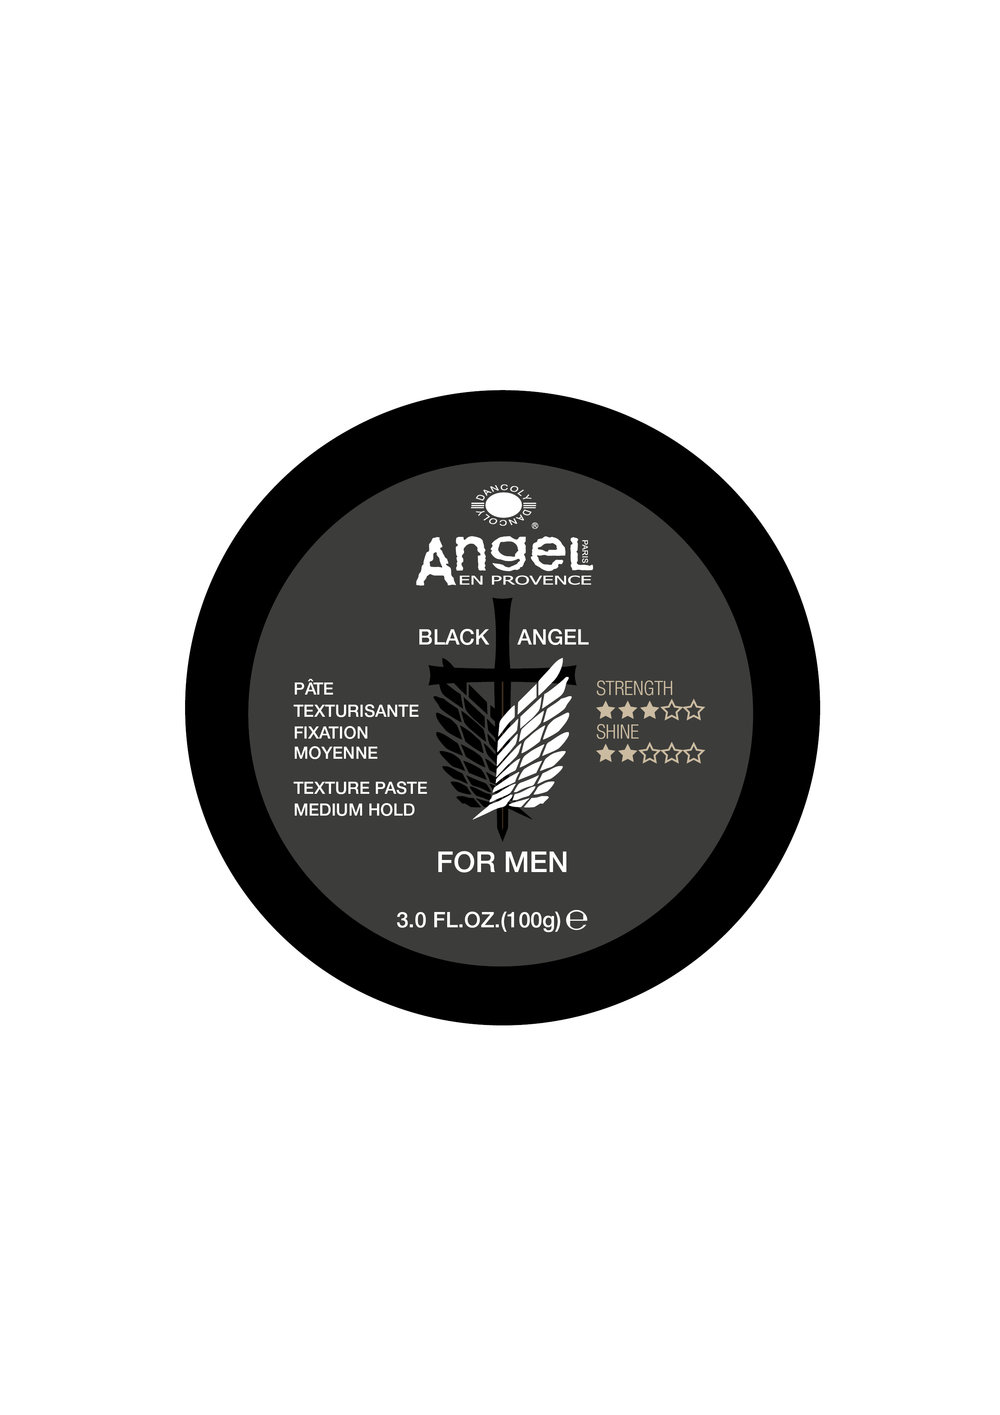 Black Angel Texture Paste Medium Hold.jpg